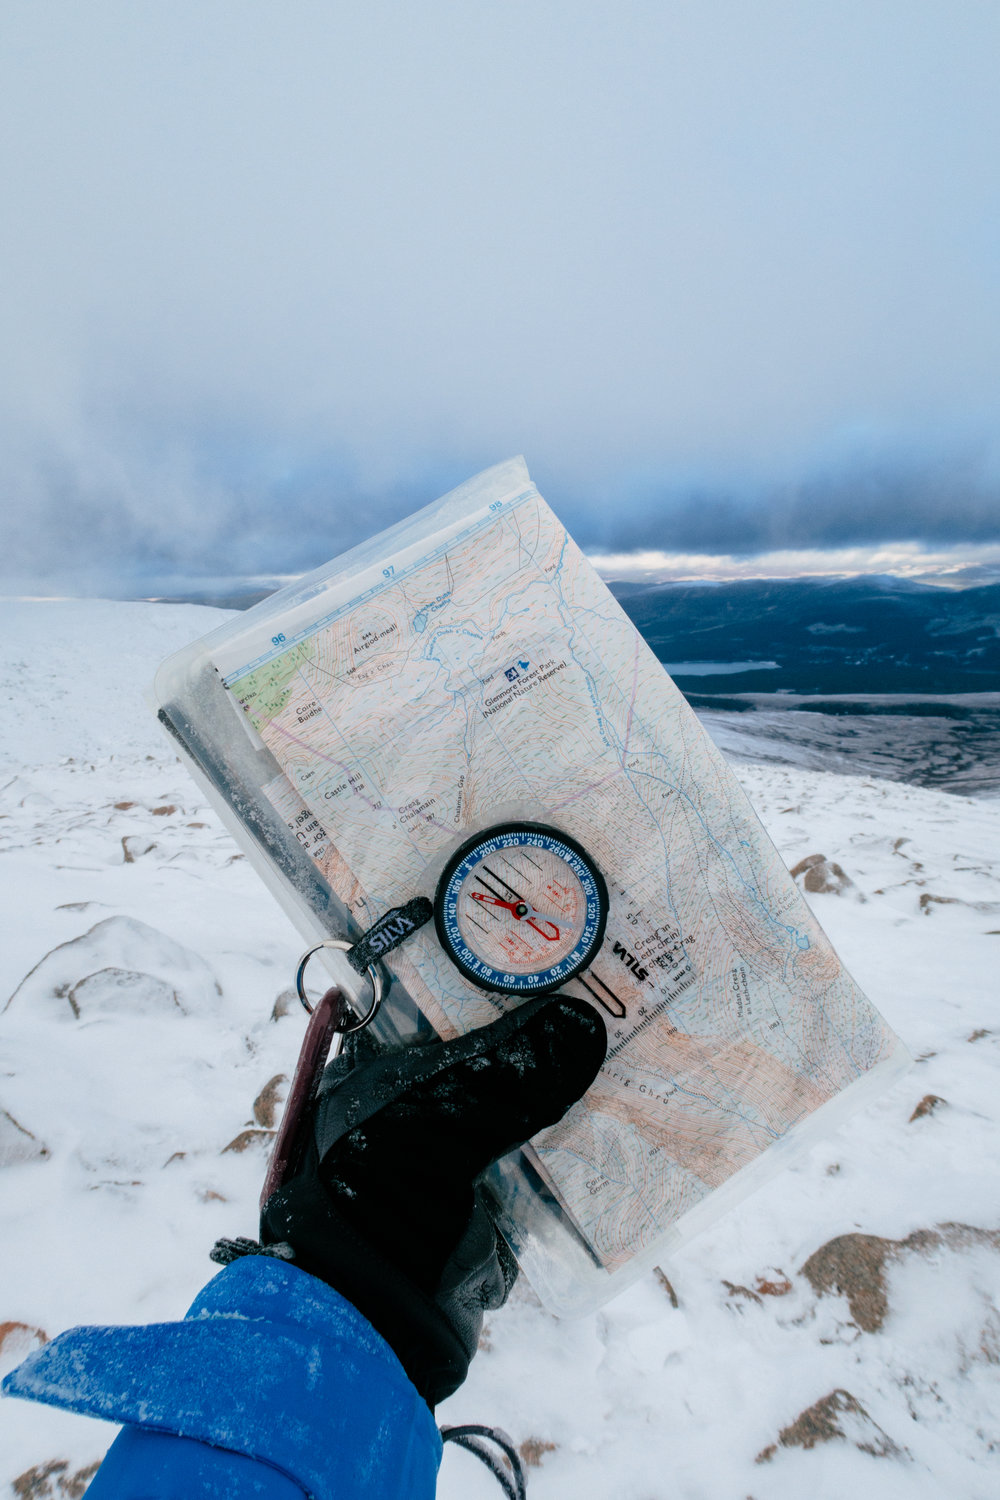 os map and silva compass in the mountains